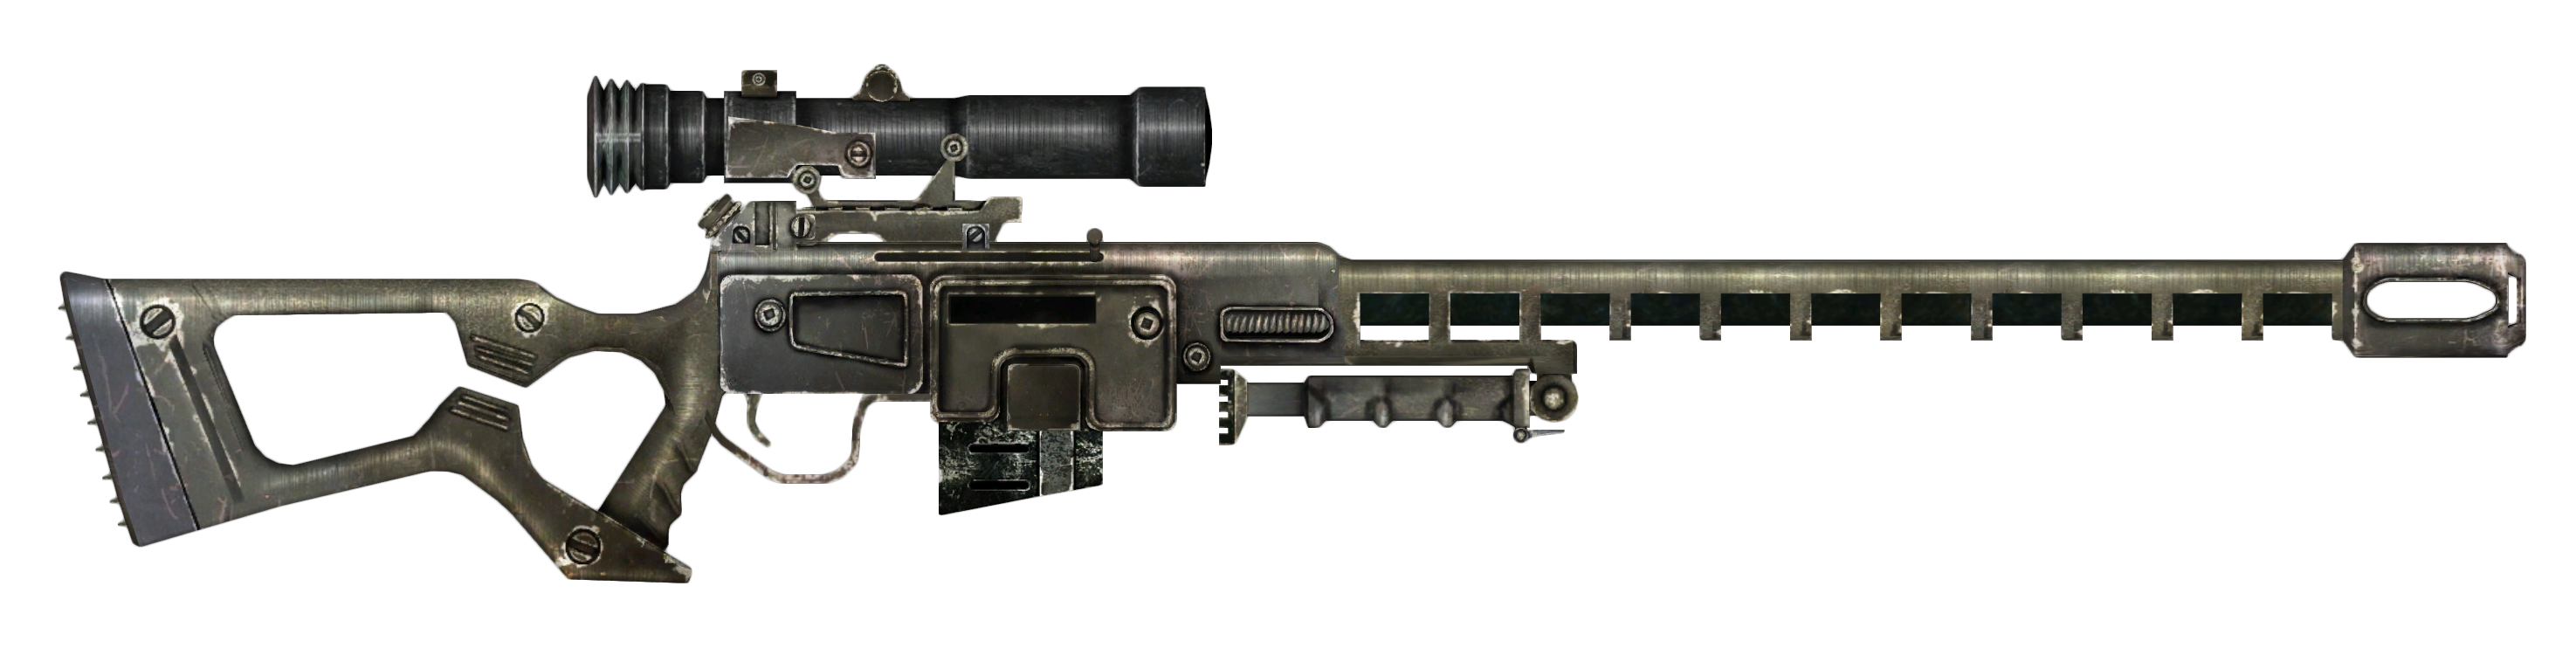 Sniper rifle